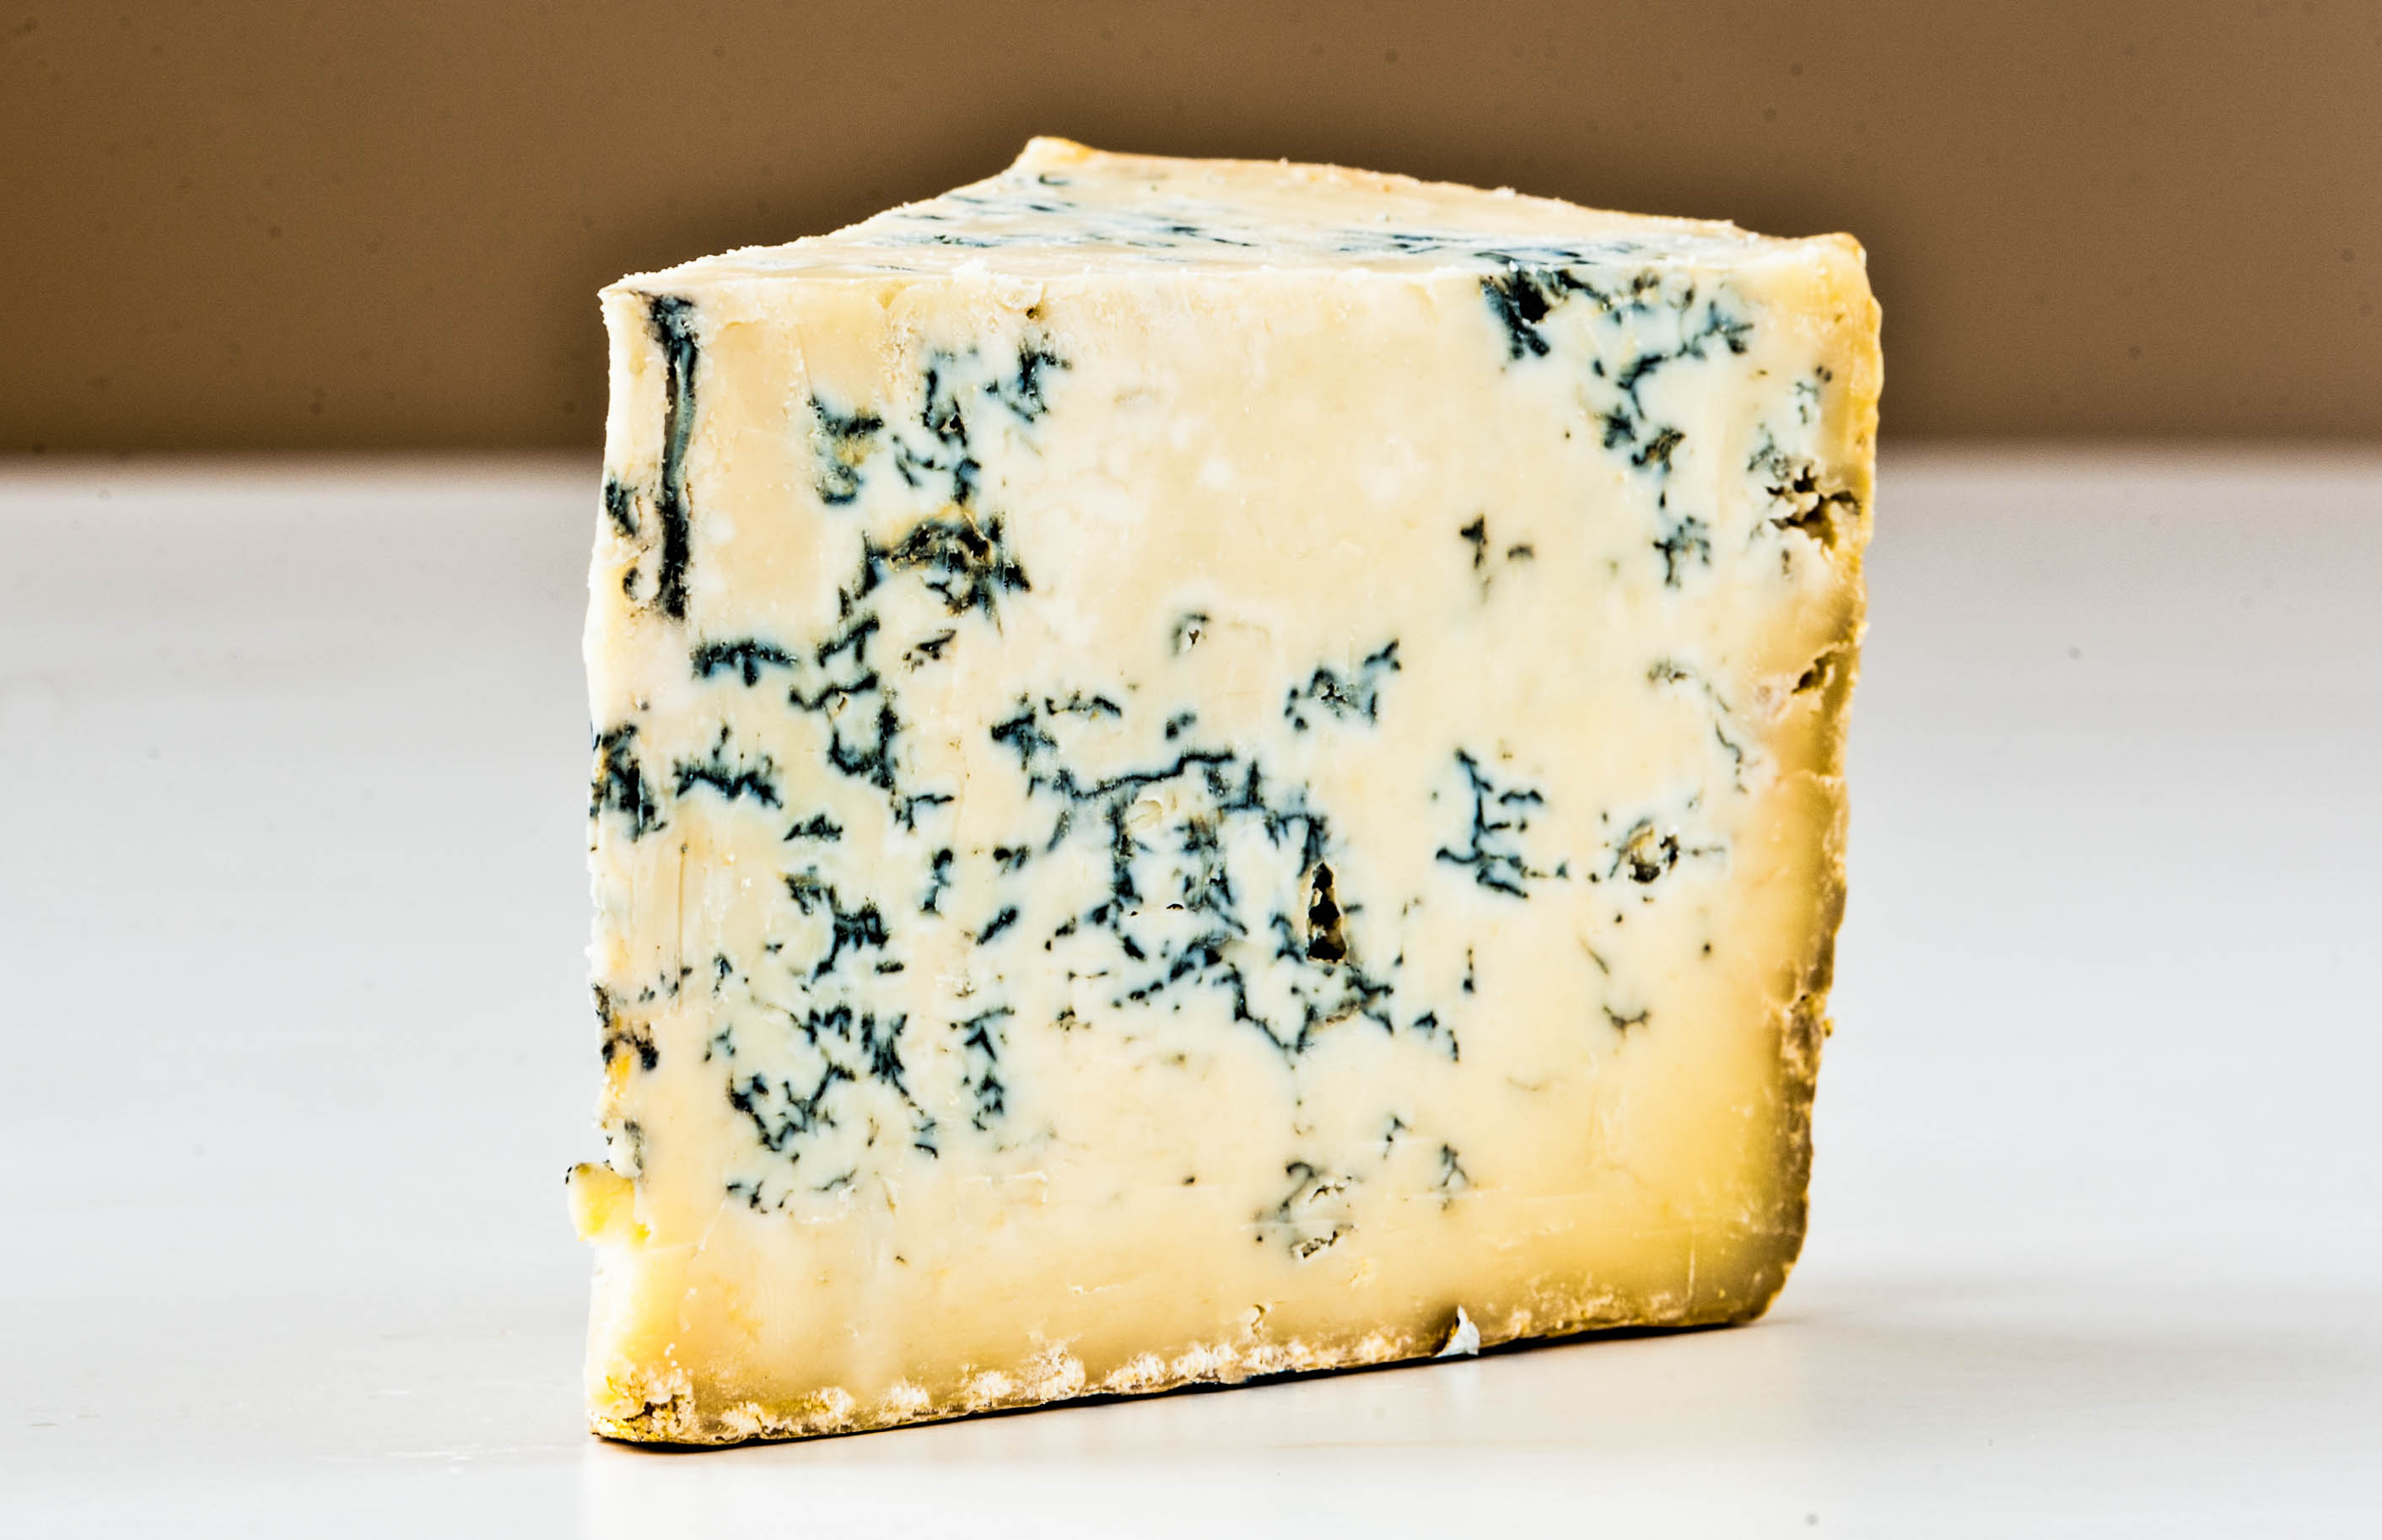 Gorgonzola is a veined Italian blue cheese, made from unskimmed cow's milk.